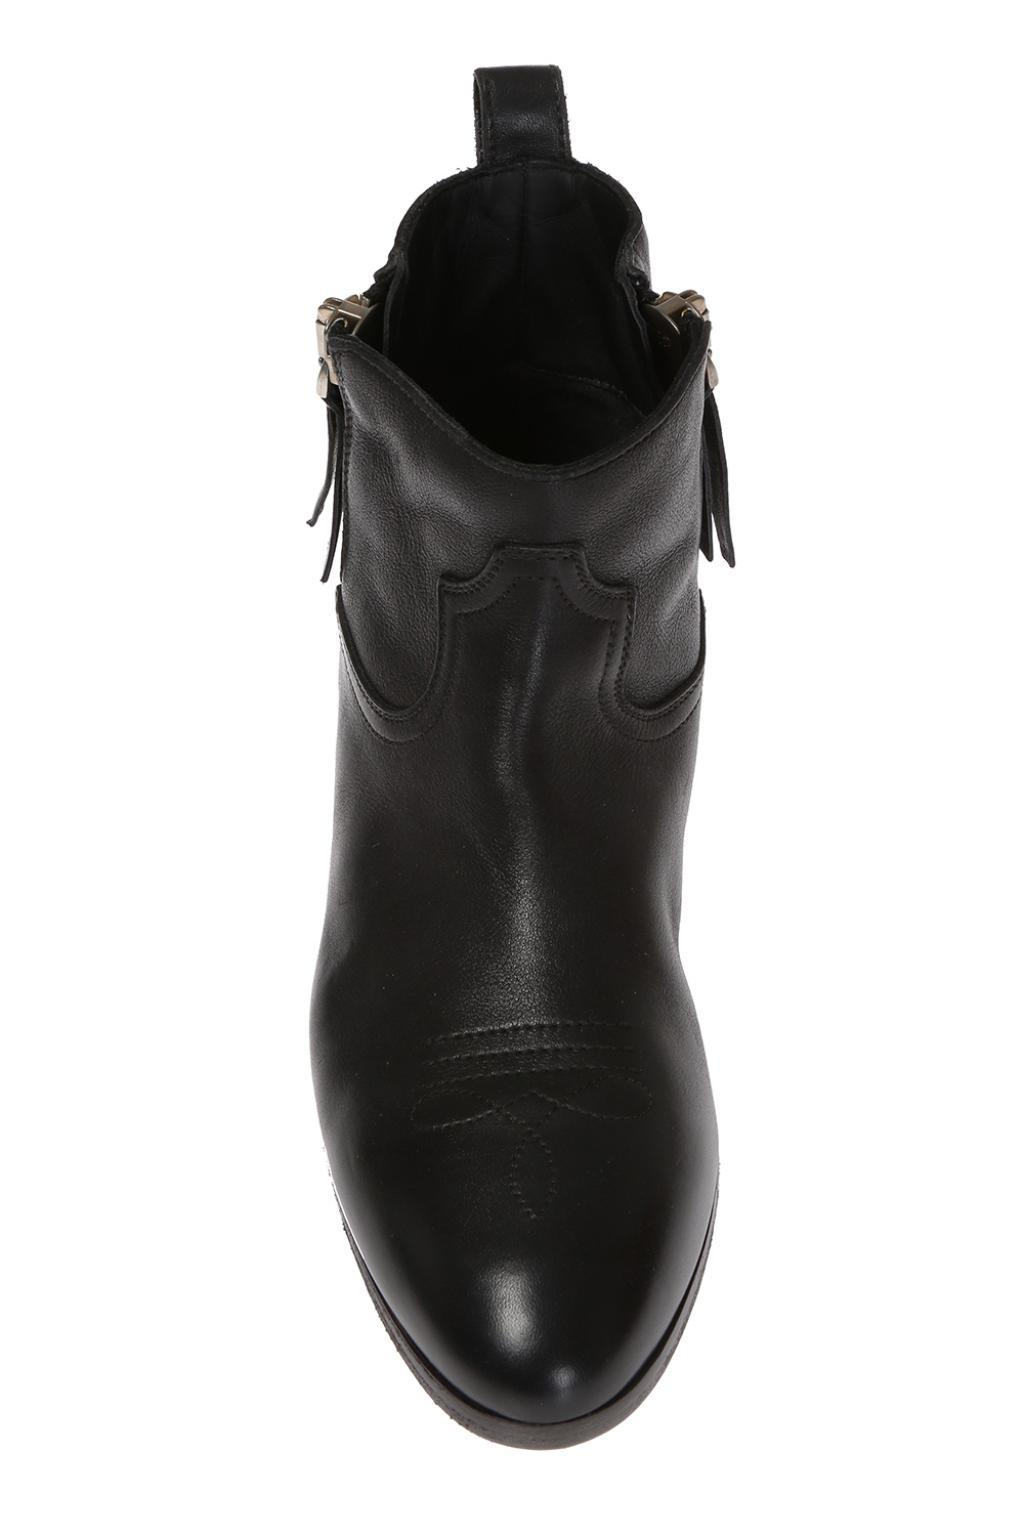 Golden Goose Deluxe Brand Goose 'viand' Heeled Ankle Boots in Black